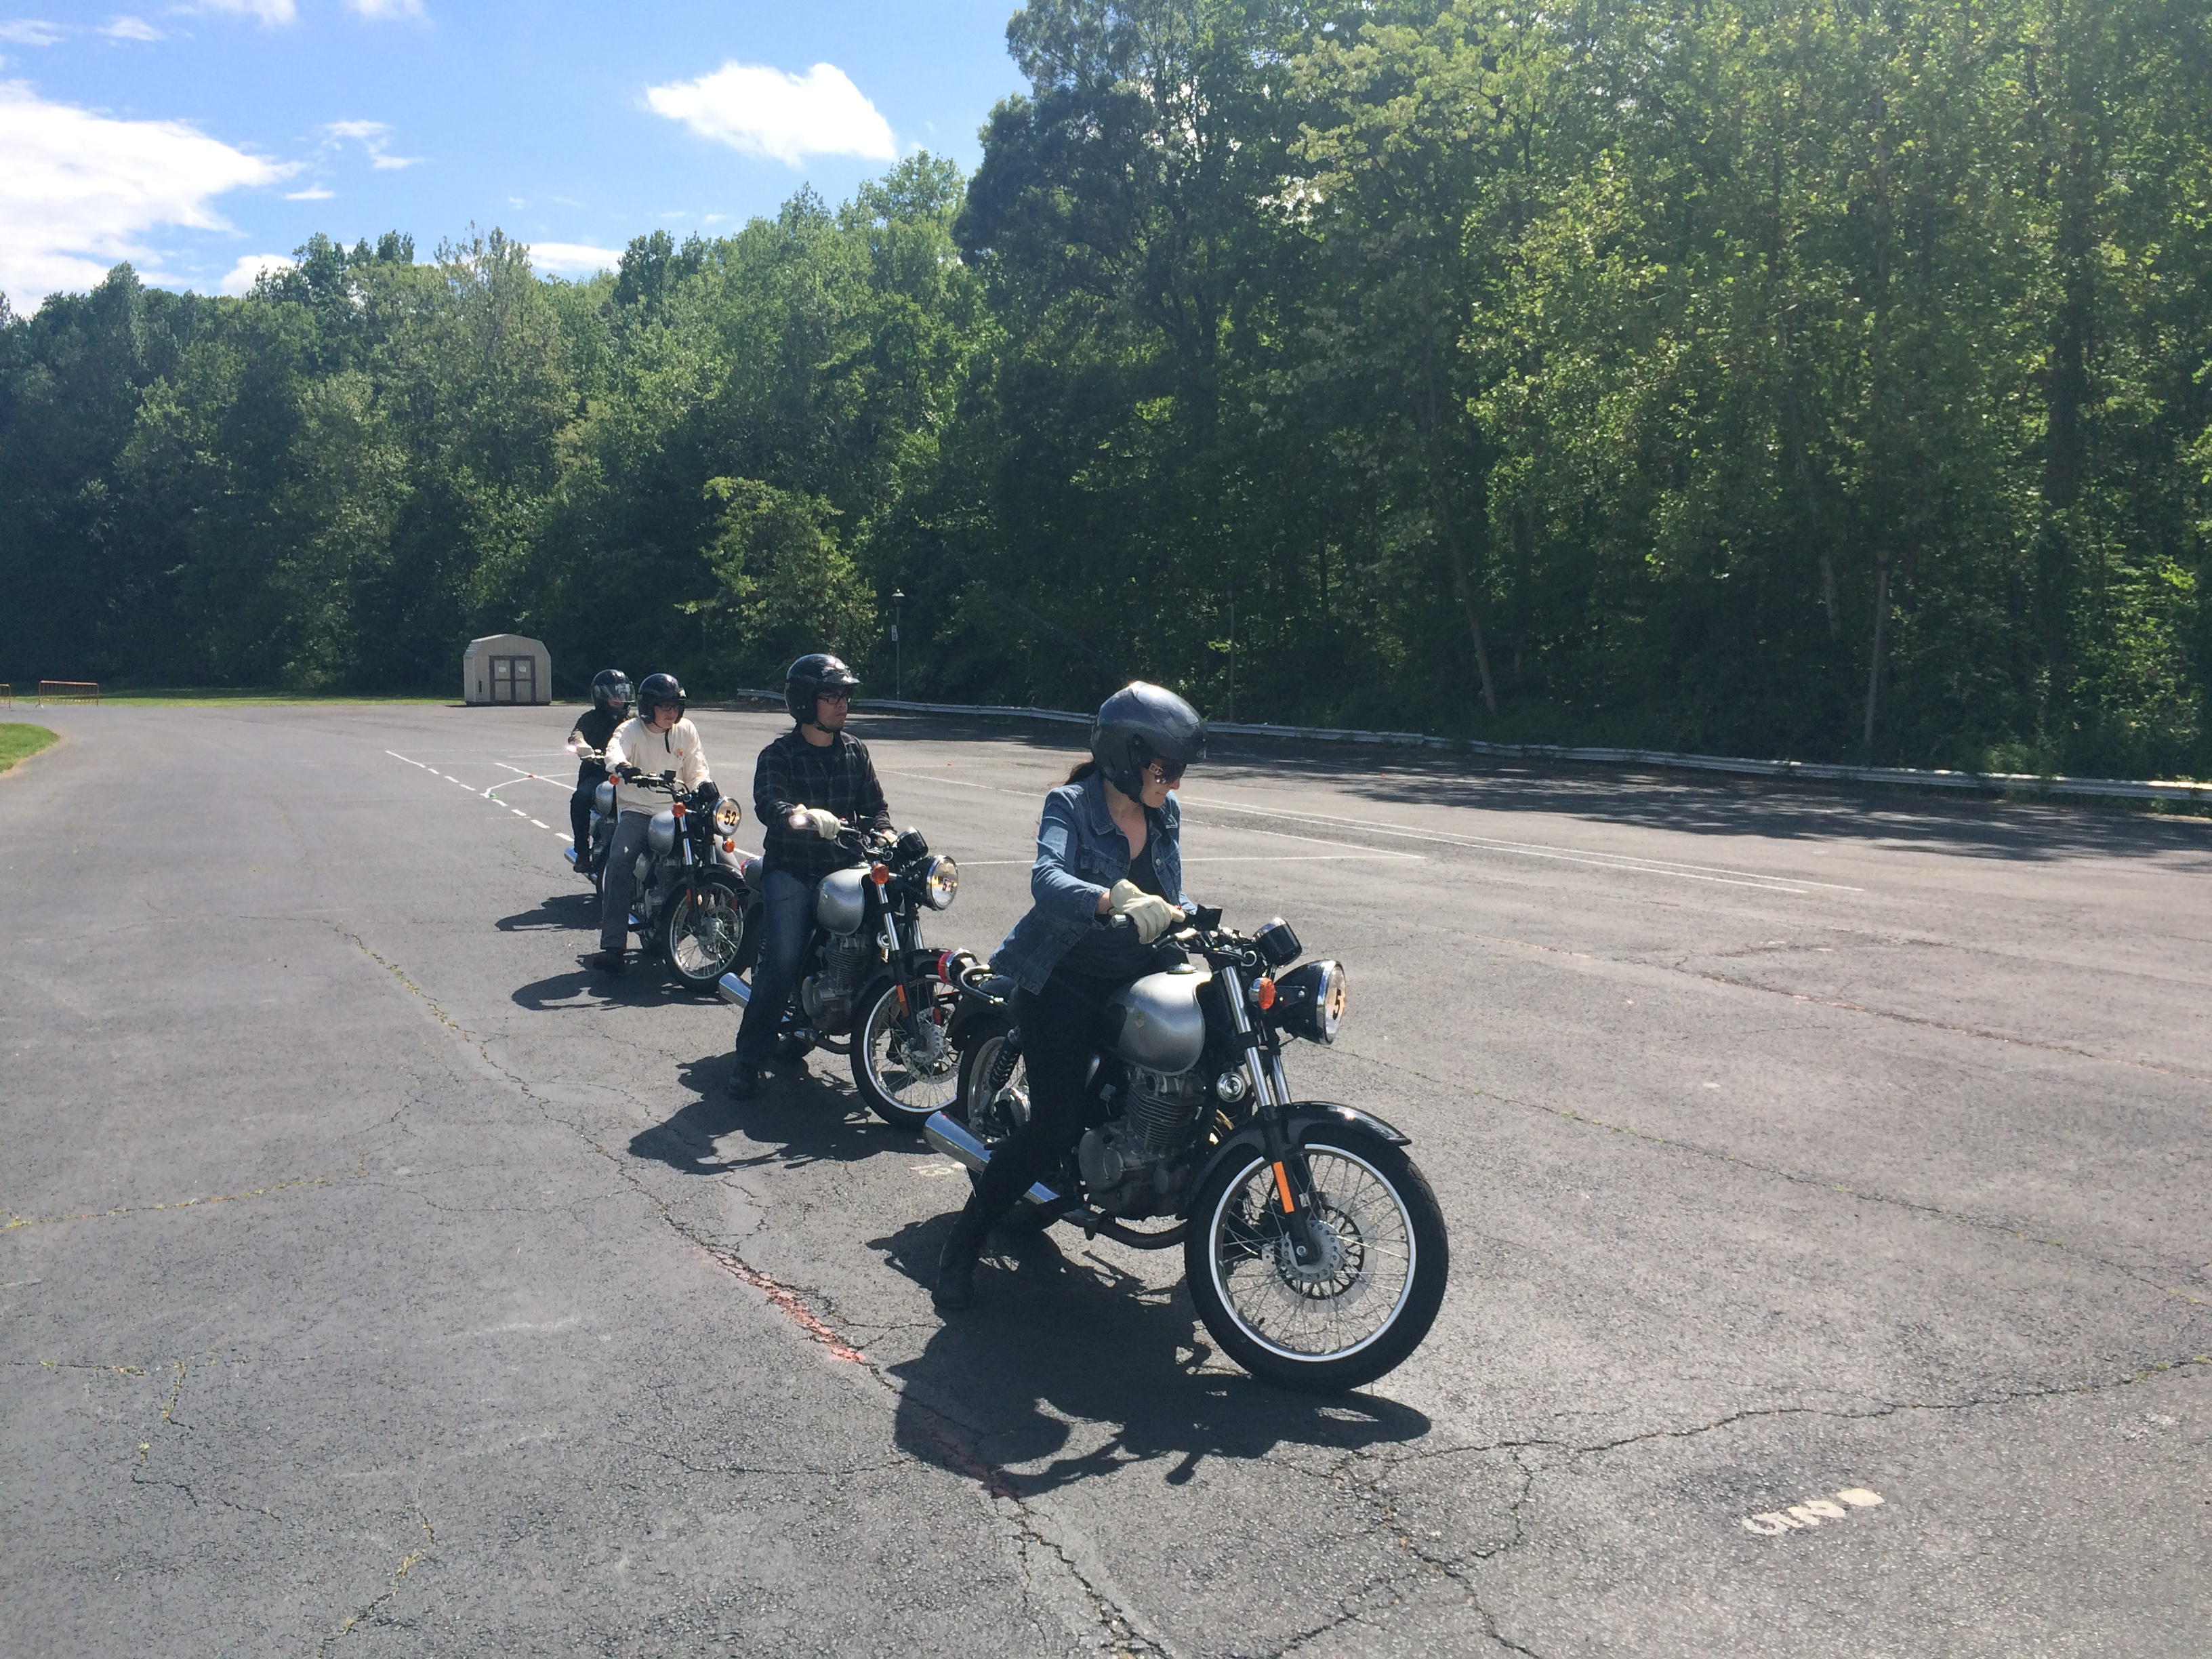 Safety tips for motorcyclists and drivers on area's congested roads